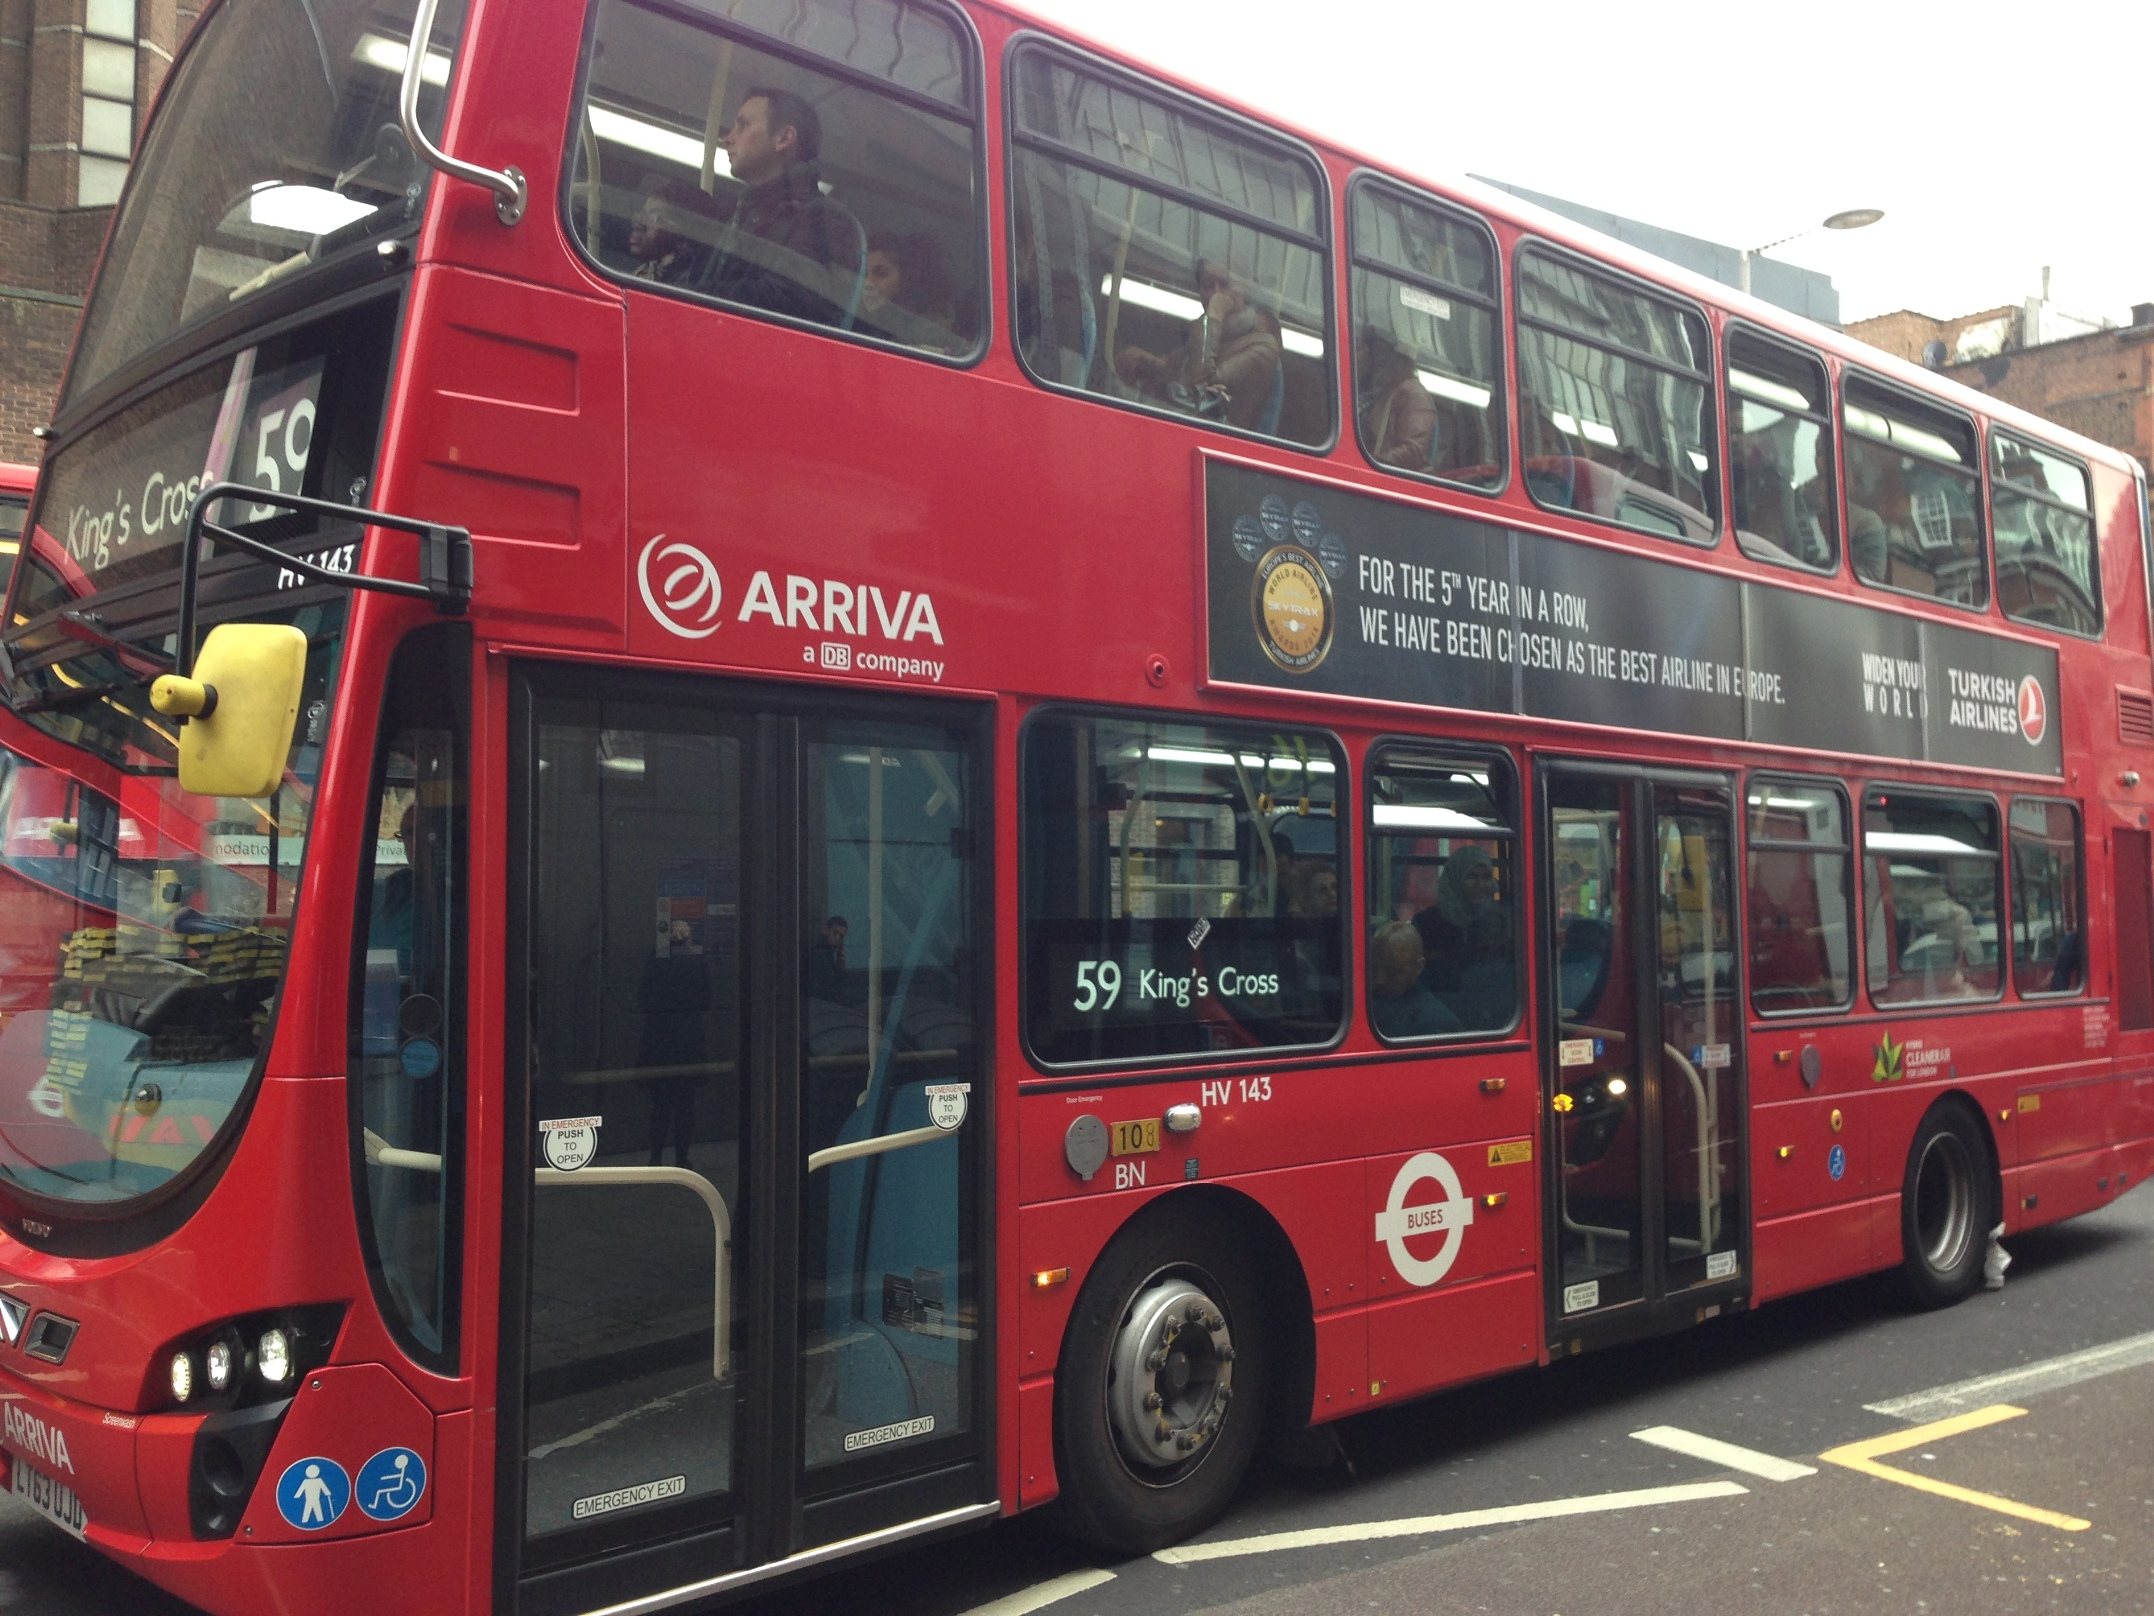 Turkish Airlines_THY_Ad_London_Red_Bus